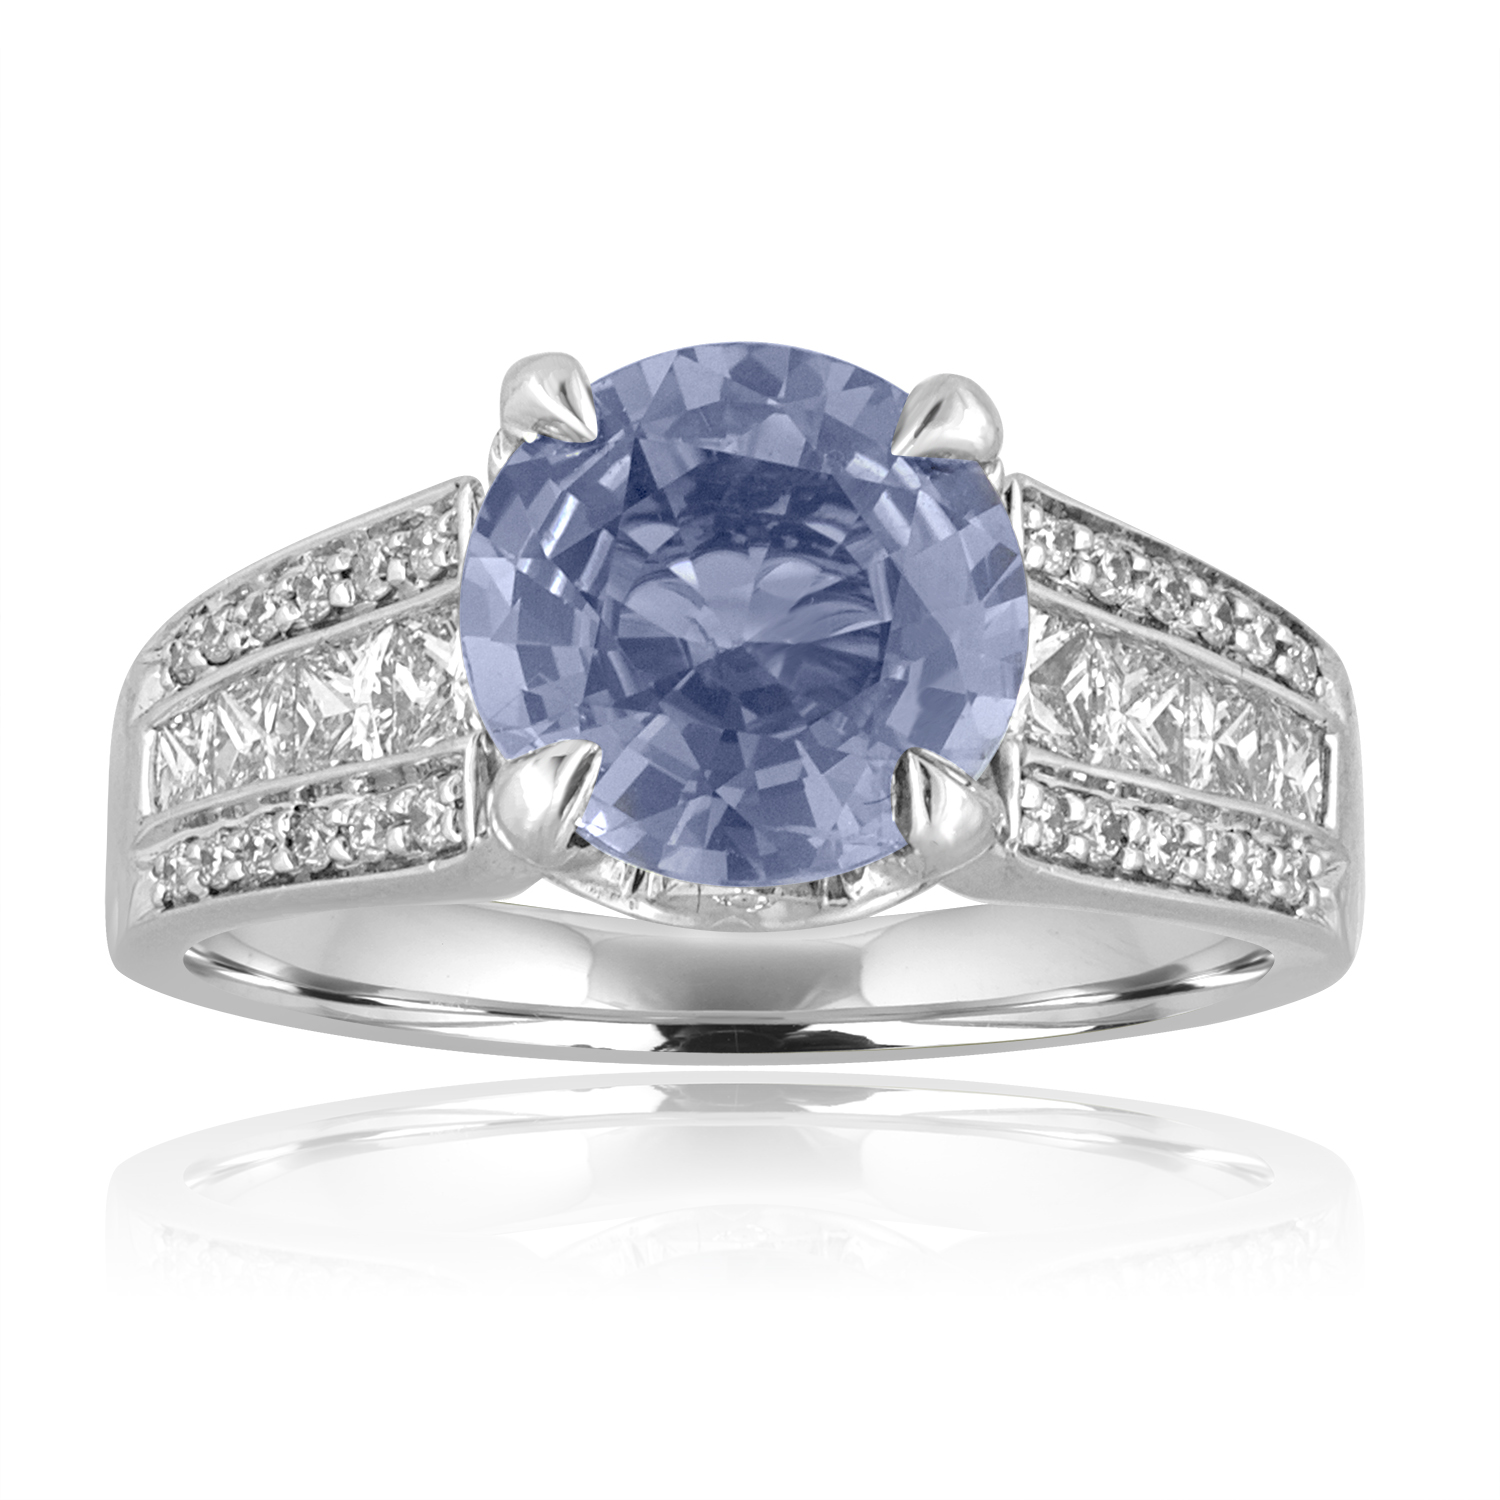 by gauthier stock design rings blue jewelry light sapphire engagement stunning scott inspirational of